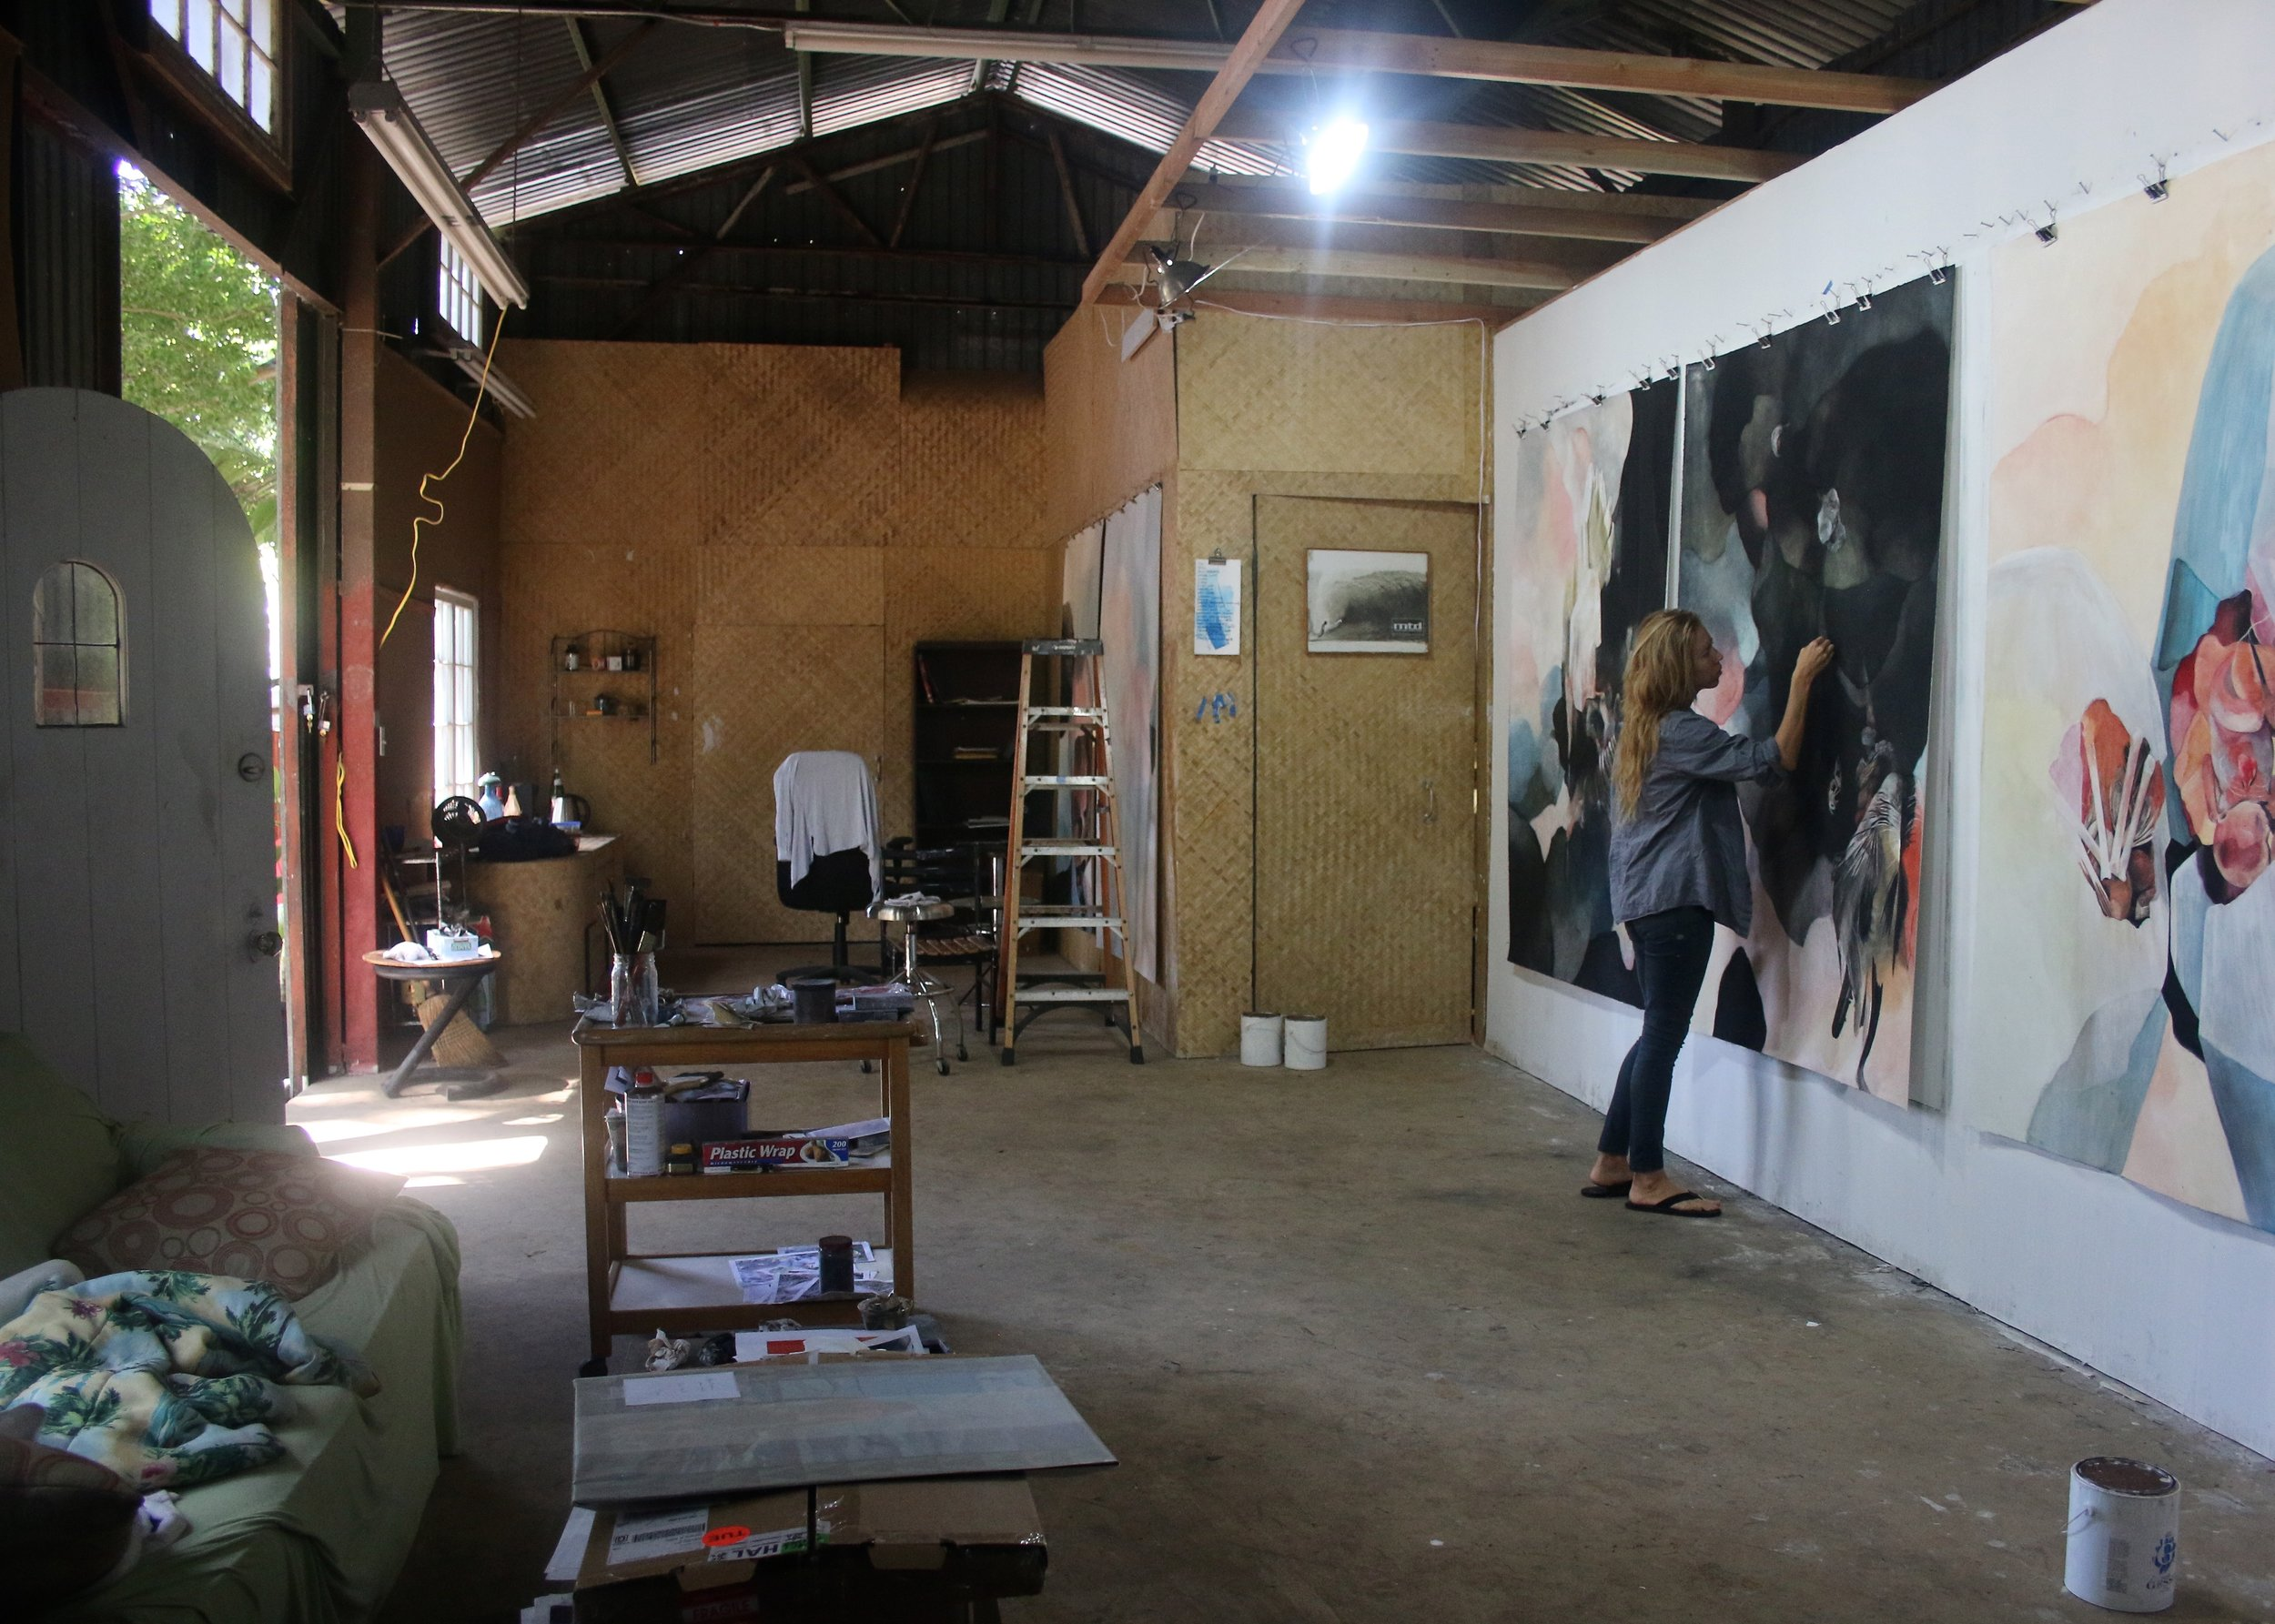 McIlroy at work in her studio